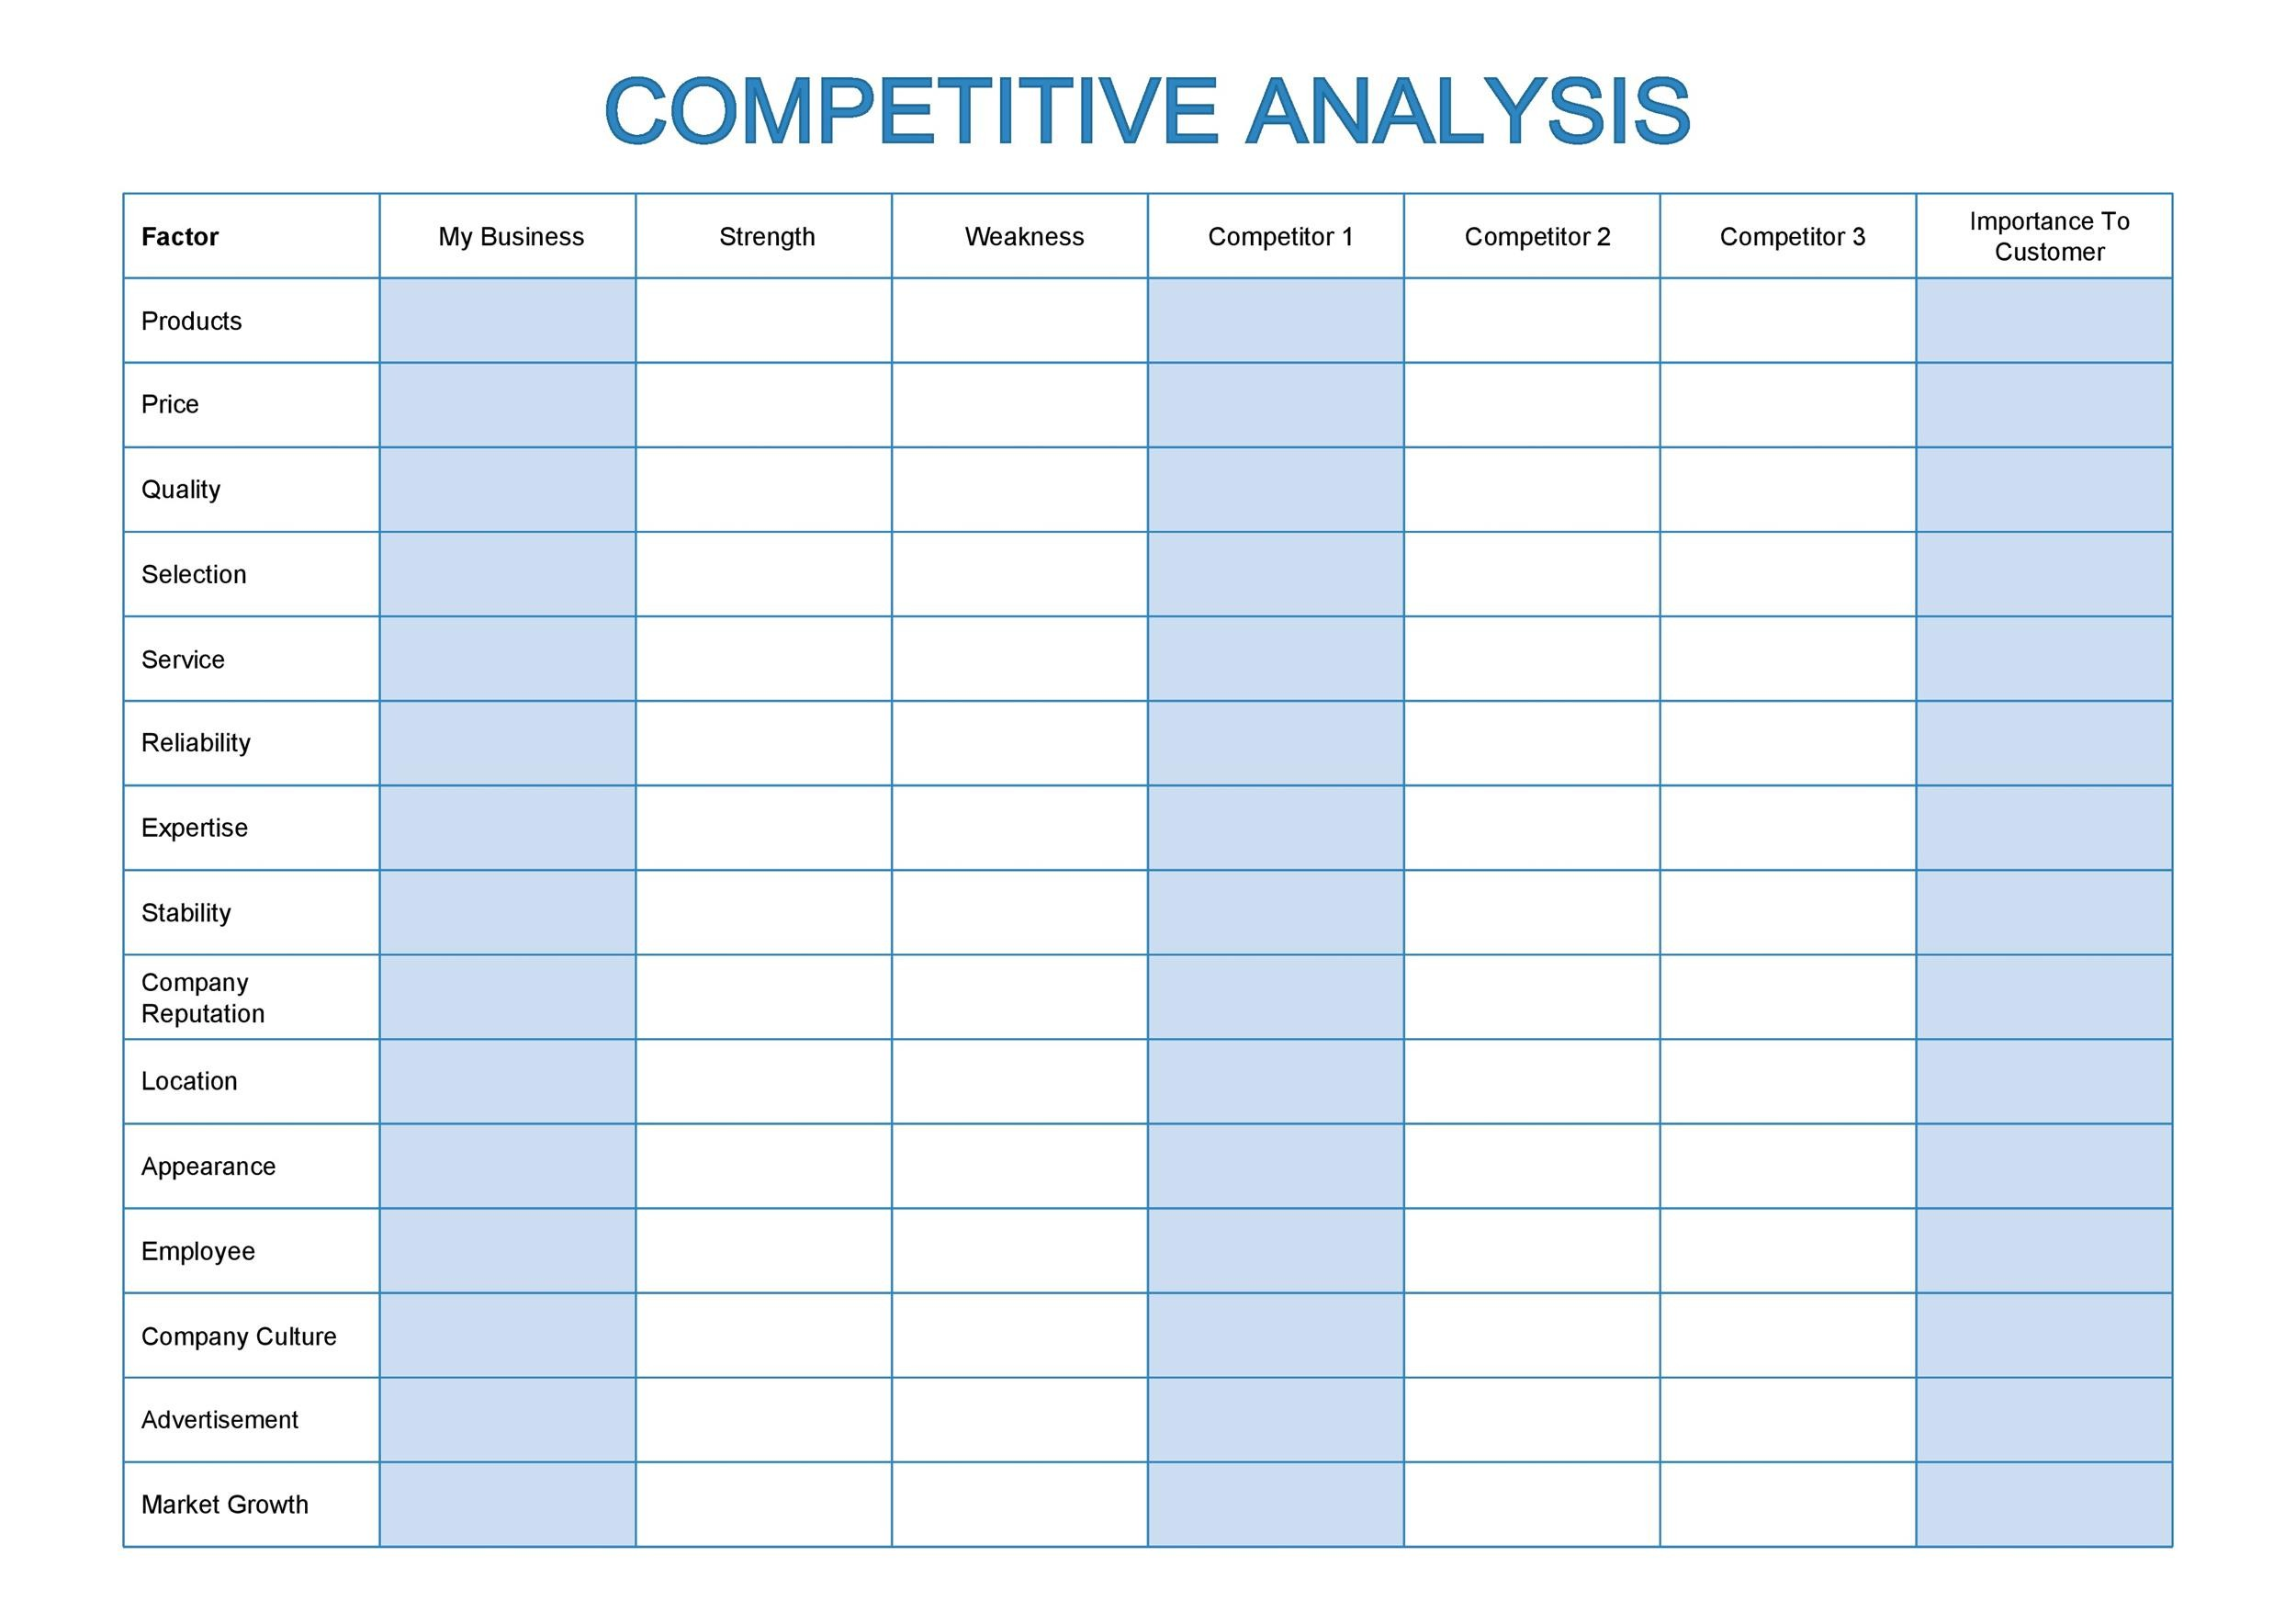 Competitor analysis template google docs this slide offers you a good structure to present the information you've gathered about your competitors to your stakeholders. Competitive Analysis Templates 40 Great Examples Excel Word Pdf Ppt